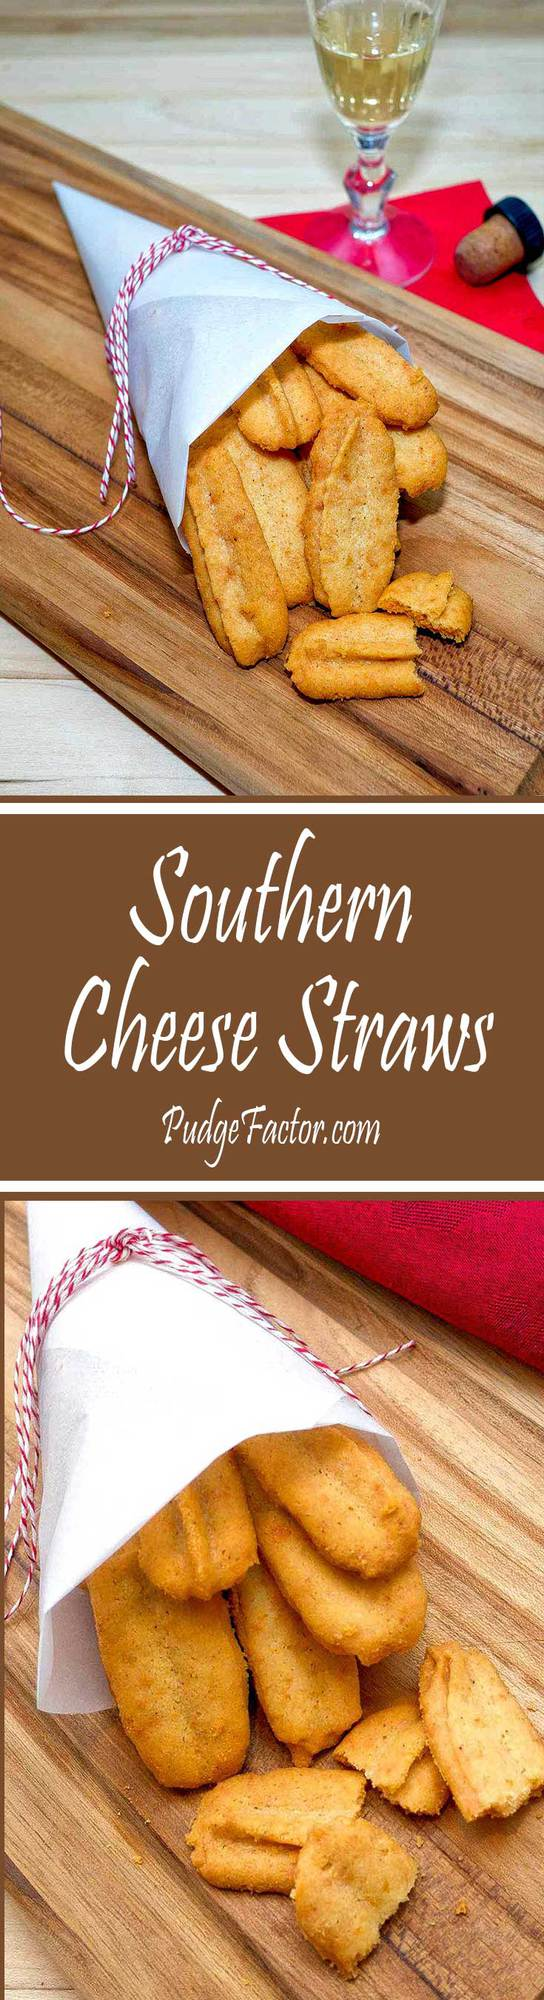 Crispy and buttery, these highly addictive cheese straws are a true southern classic.